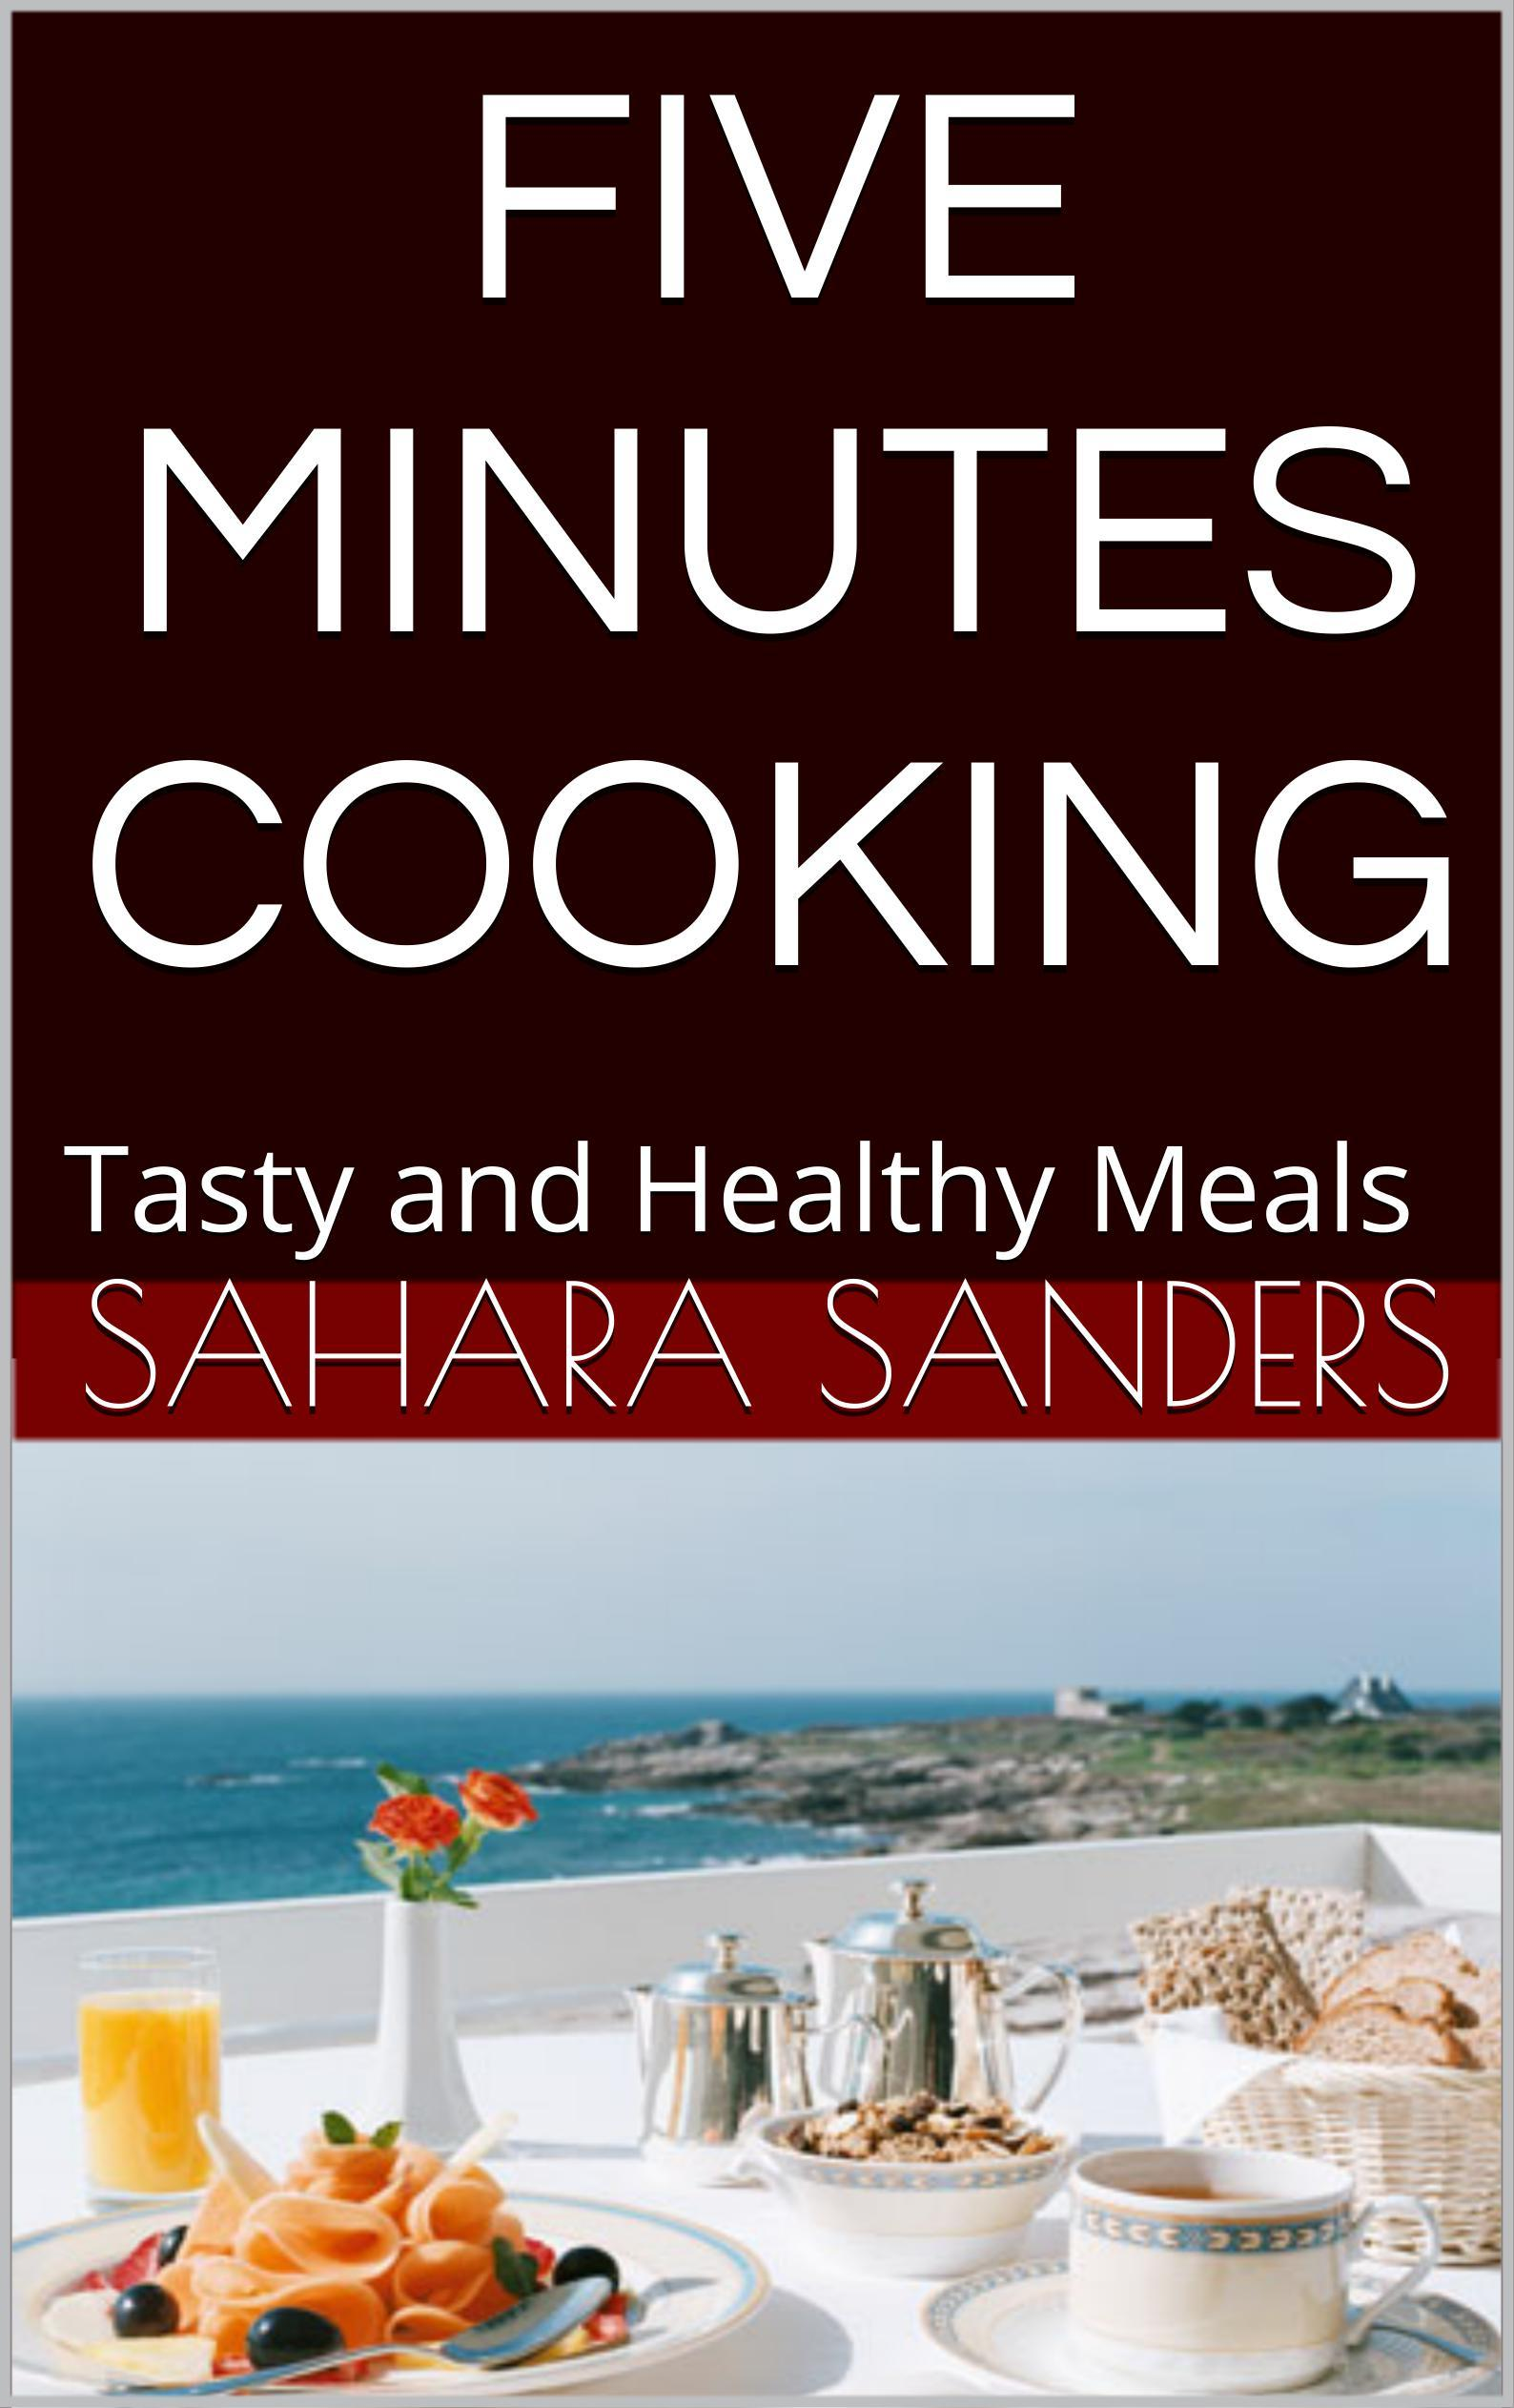 Five Minute Cooking: Tasty and Healthy Meals (Edible Excellence, #2) Sahara Sanders